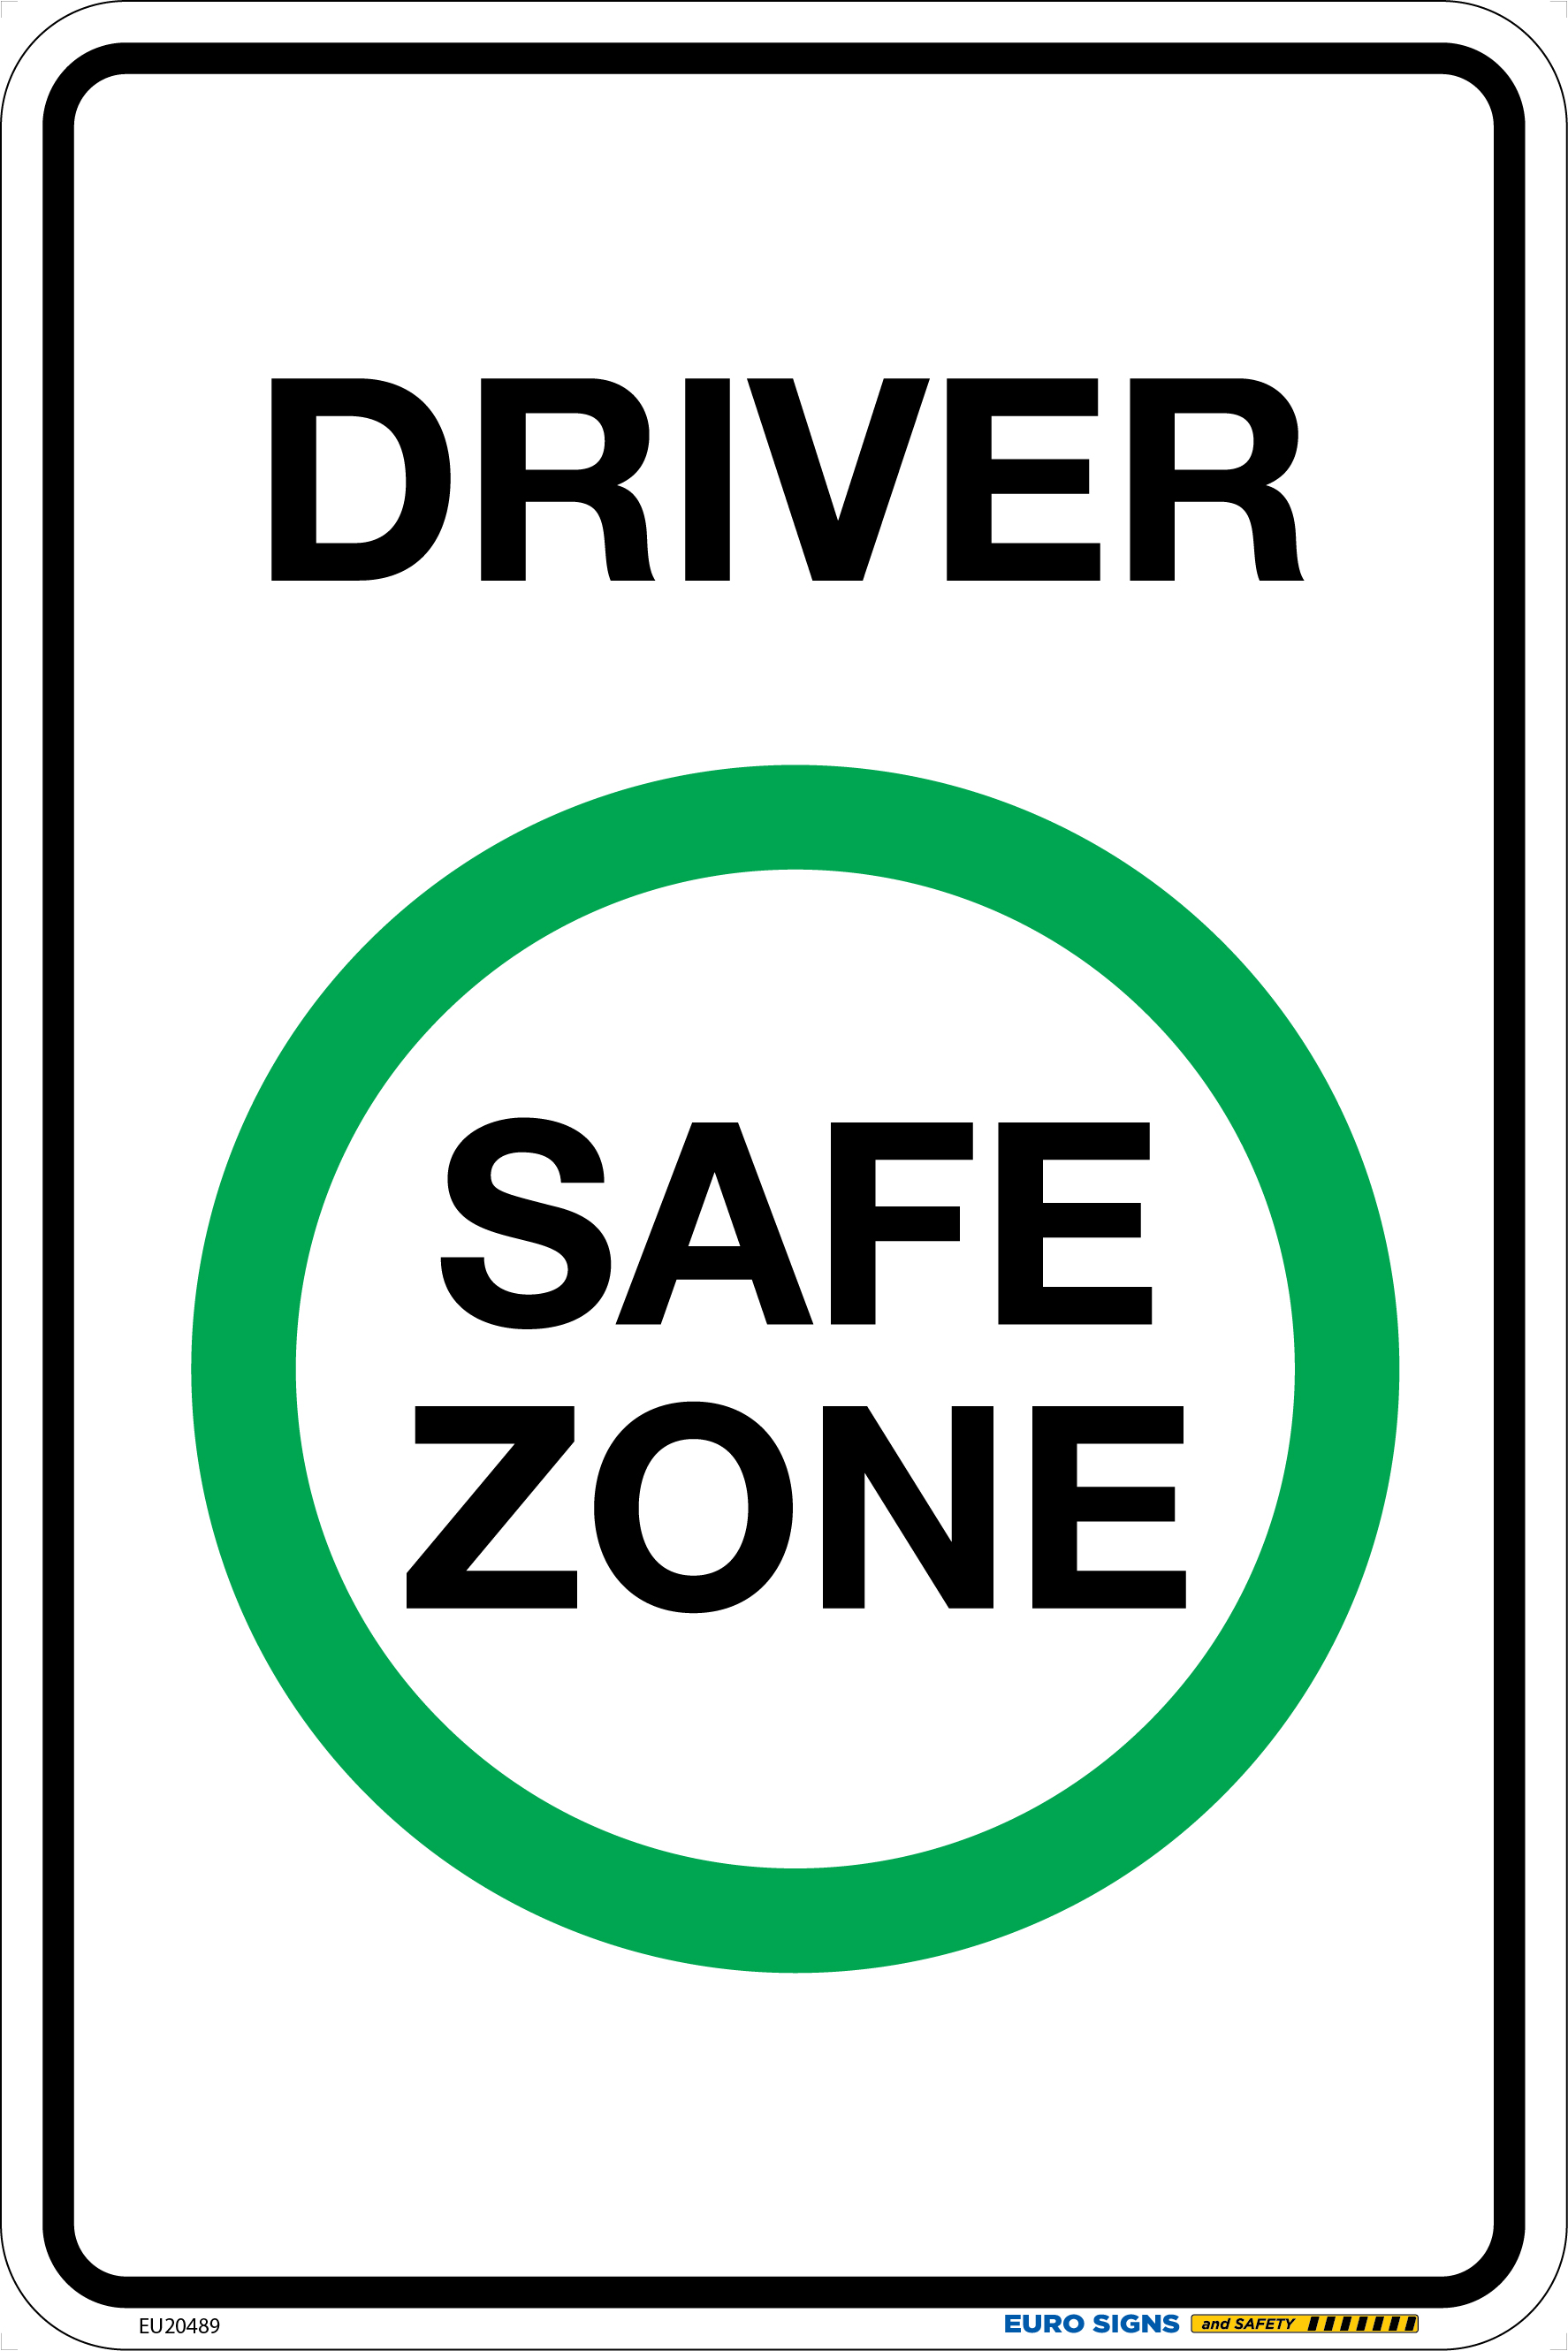 Driver Safe Zone 300x450 Mtl Euro Signs And Safety